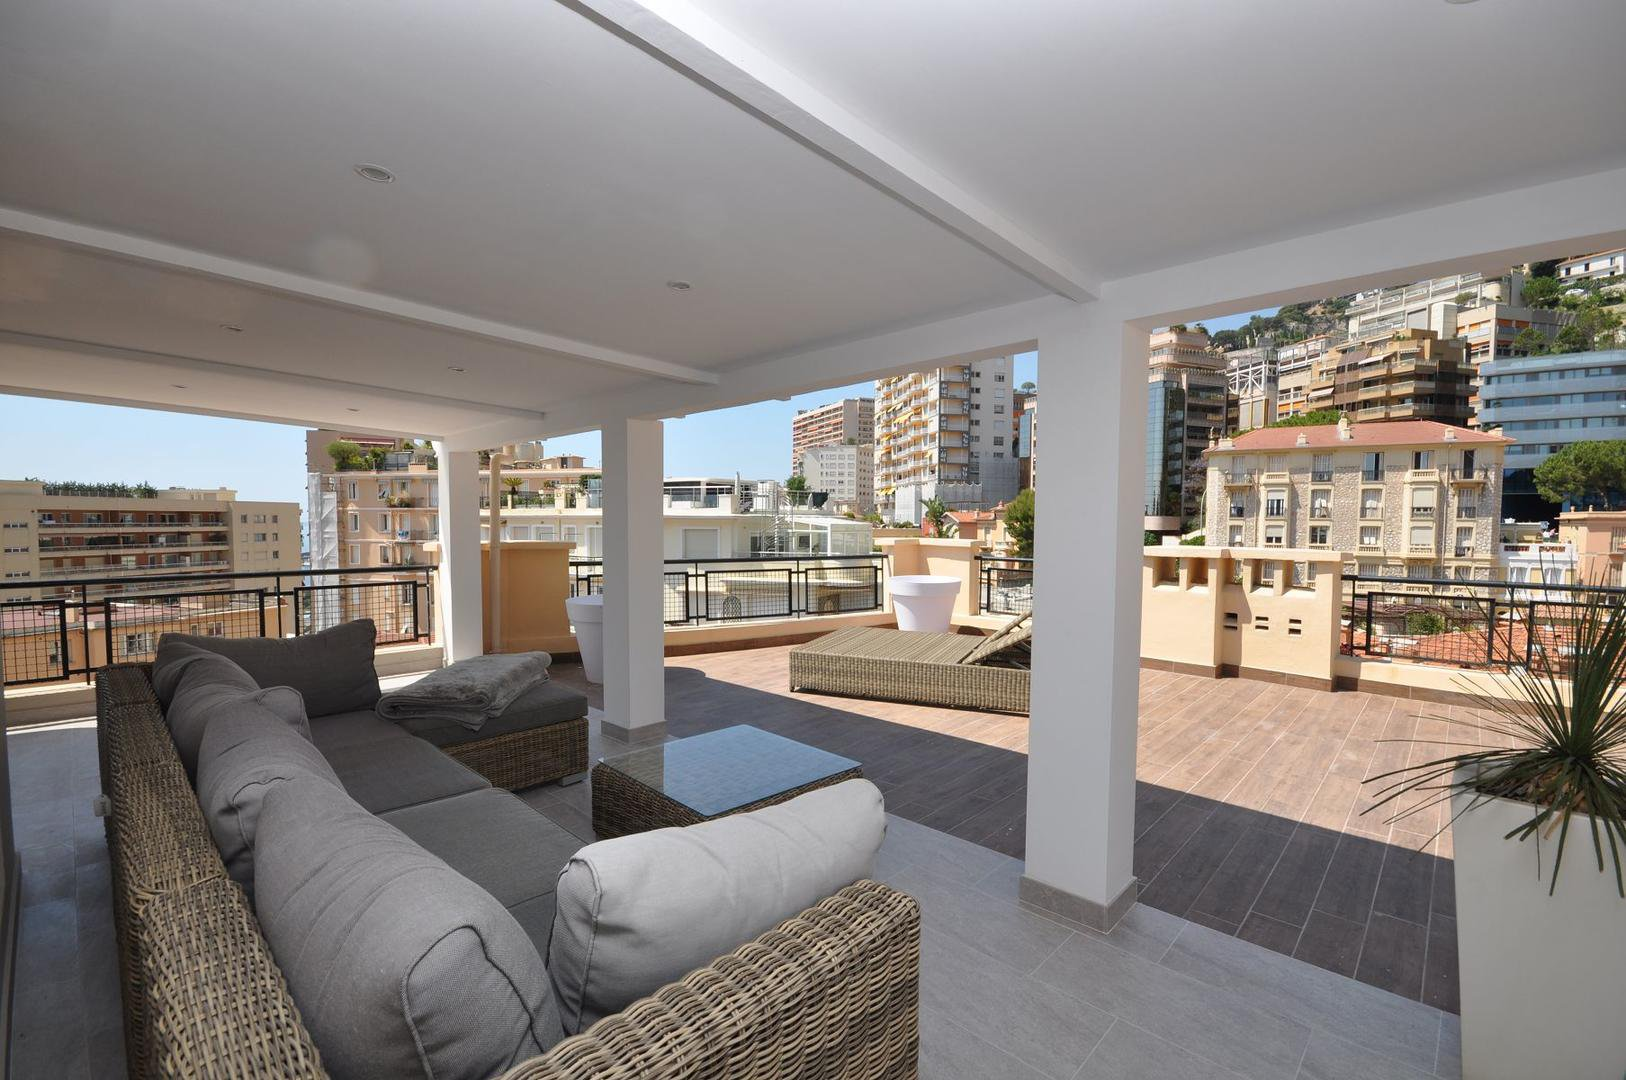 Duplex-Penthouse Completely Renovated - Great View